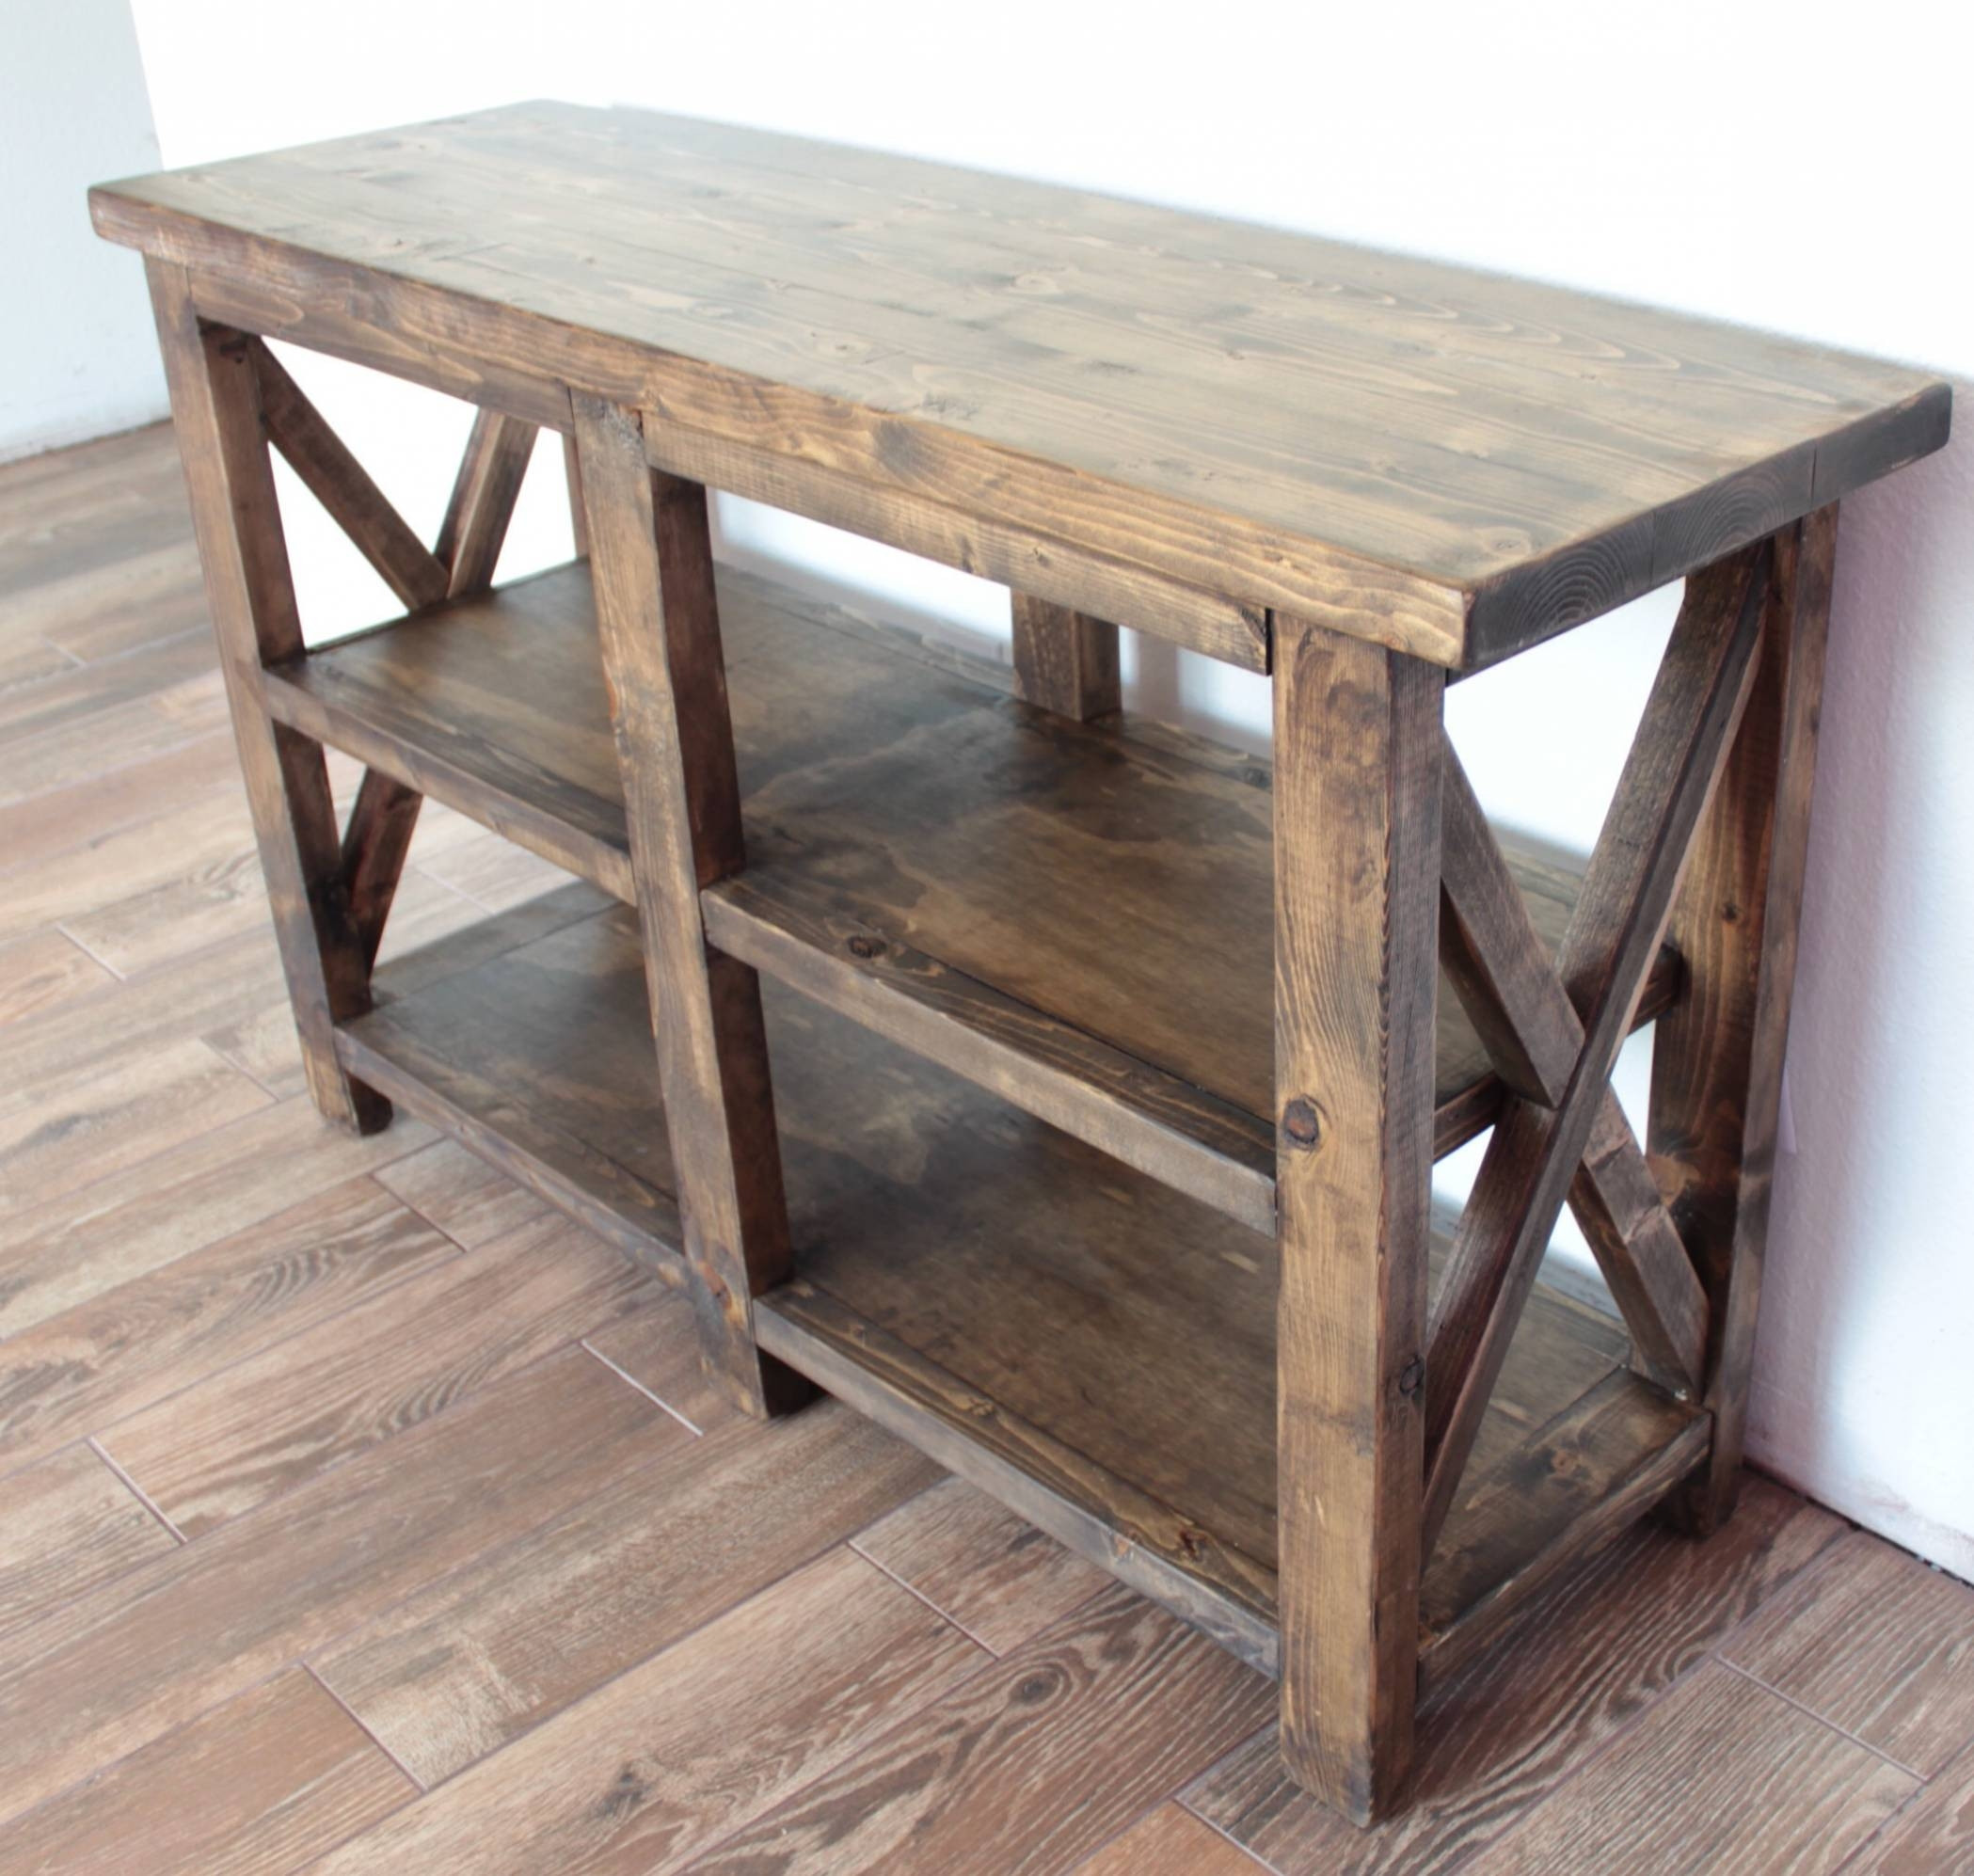 Best ideas about Rustic Entryway Table . Save or Pin 15 Ideas of Entryway Table Furniture Now.